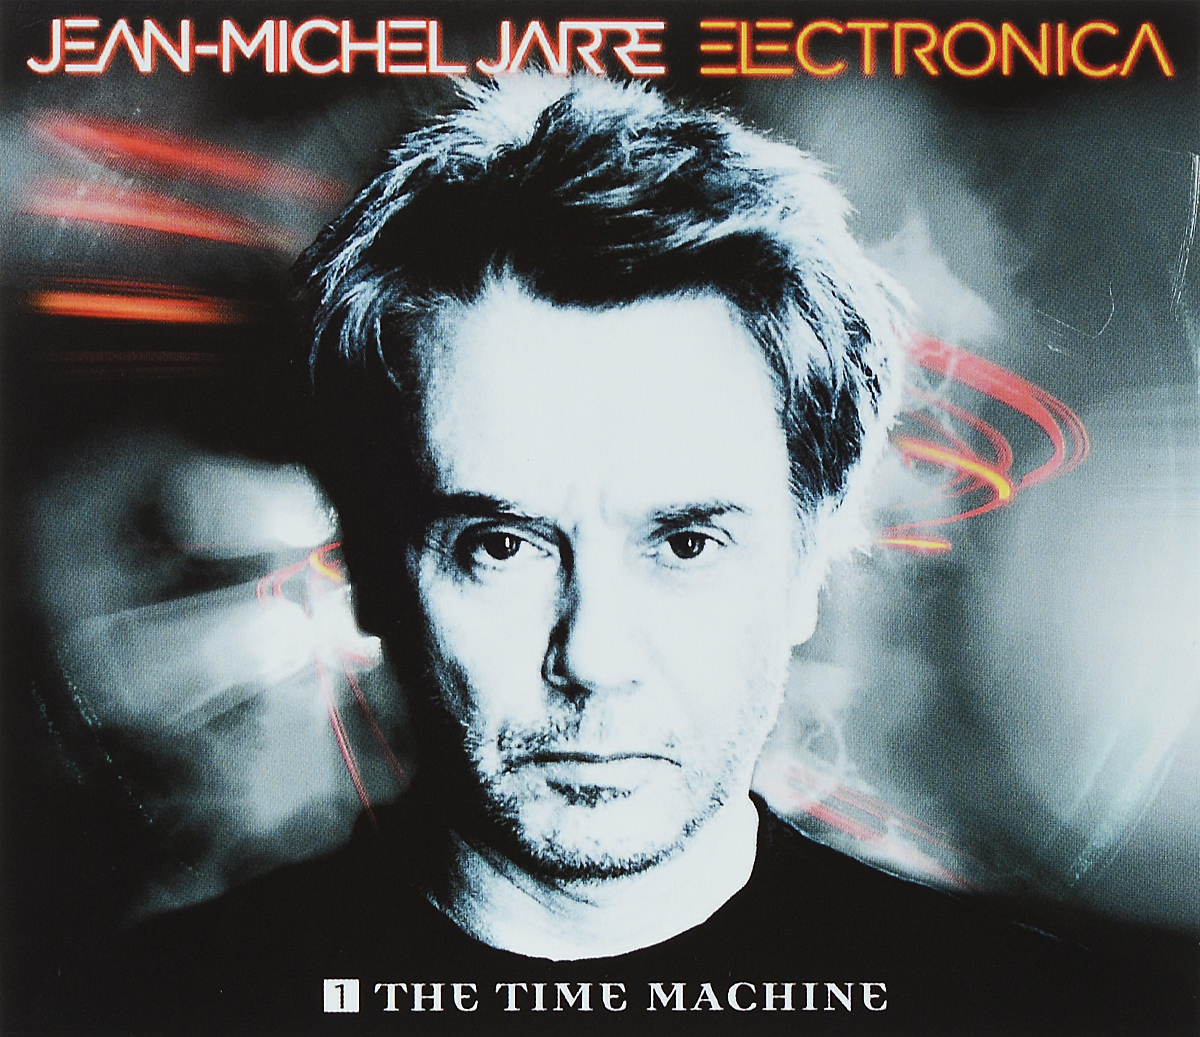 Жан-Мишель Жарр Jean Michel Jarre. Electronica 1 - The Time Machine виниловая пластинка jean michel jarre electronica 2 the heart of noise